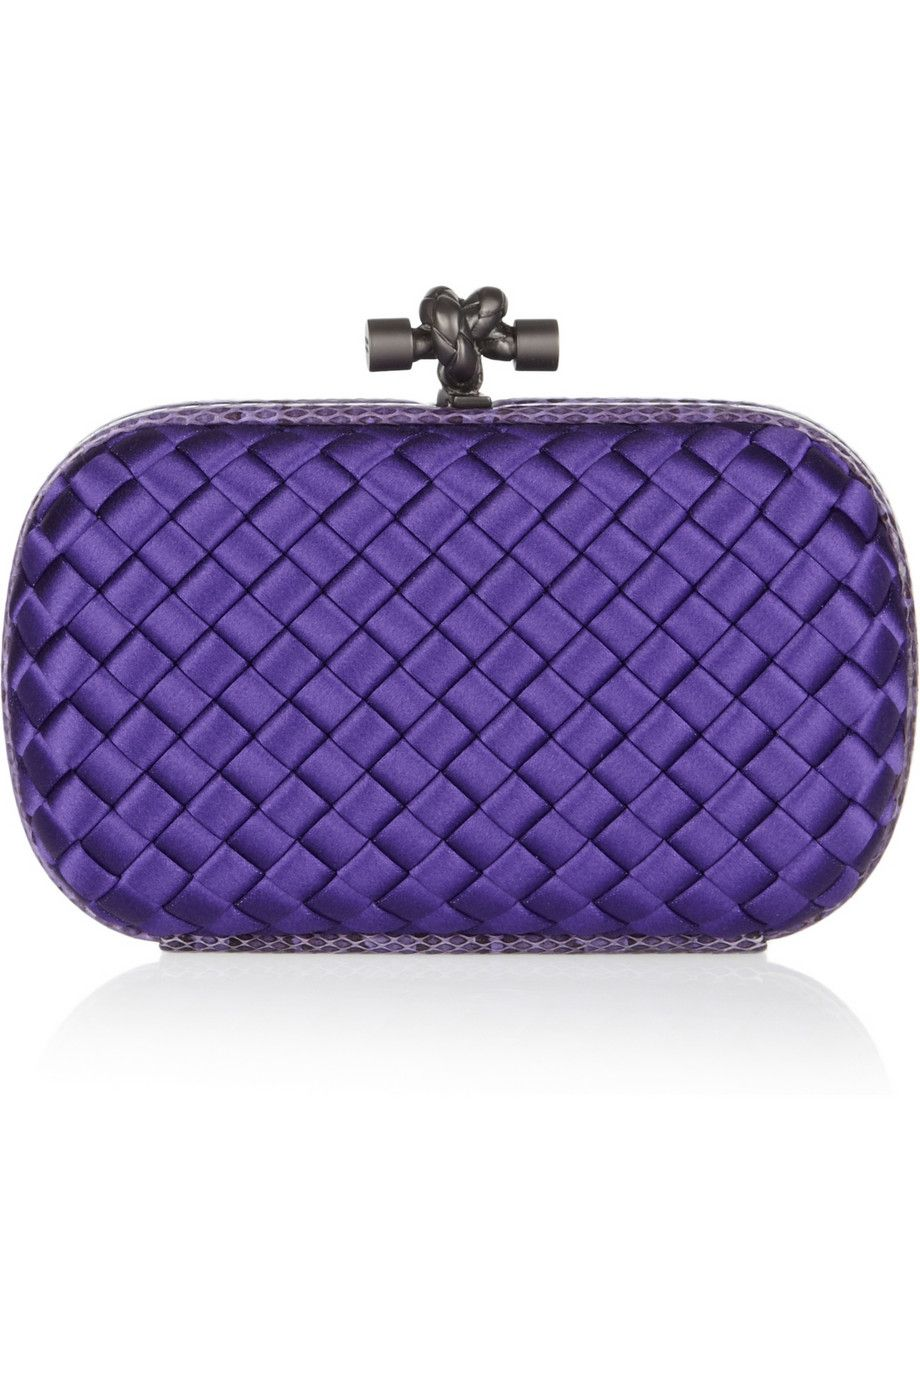 94b51fc036 purple satin knot clutch